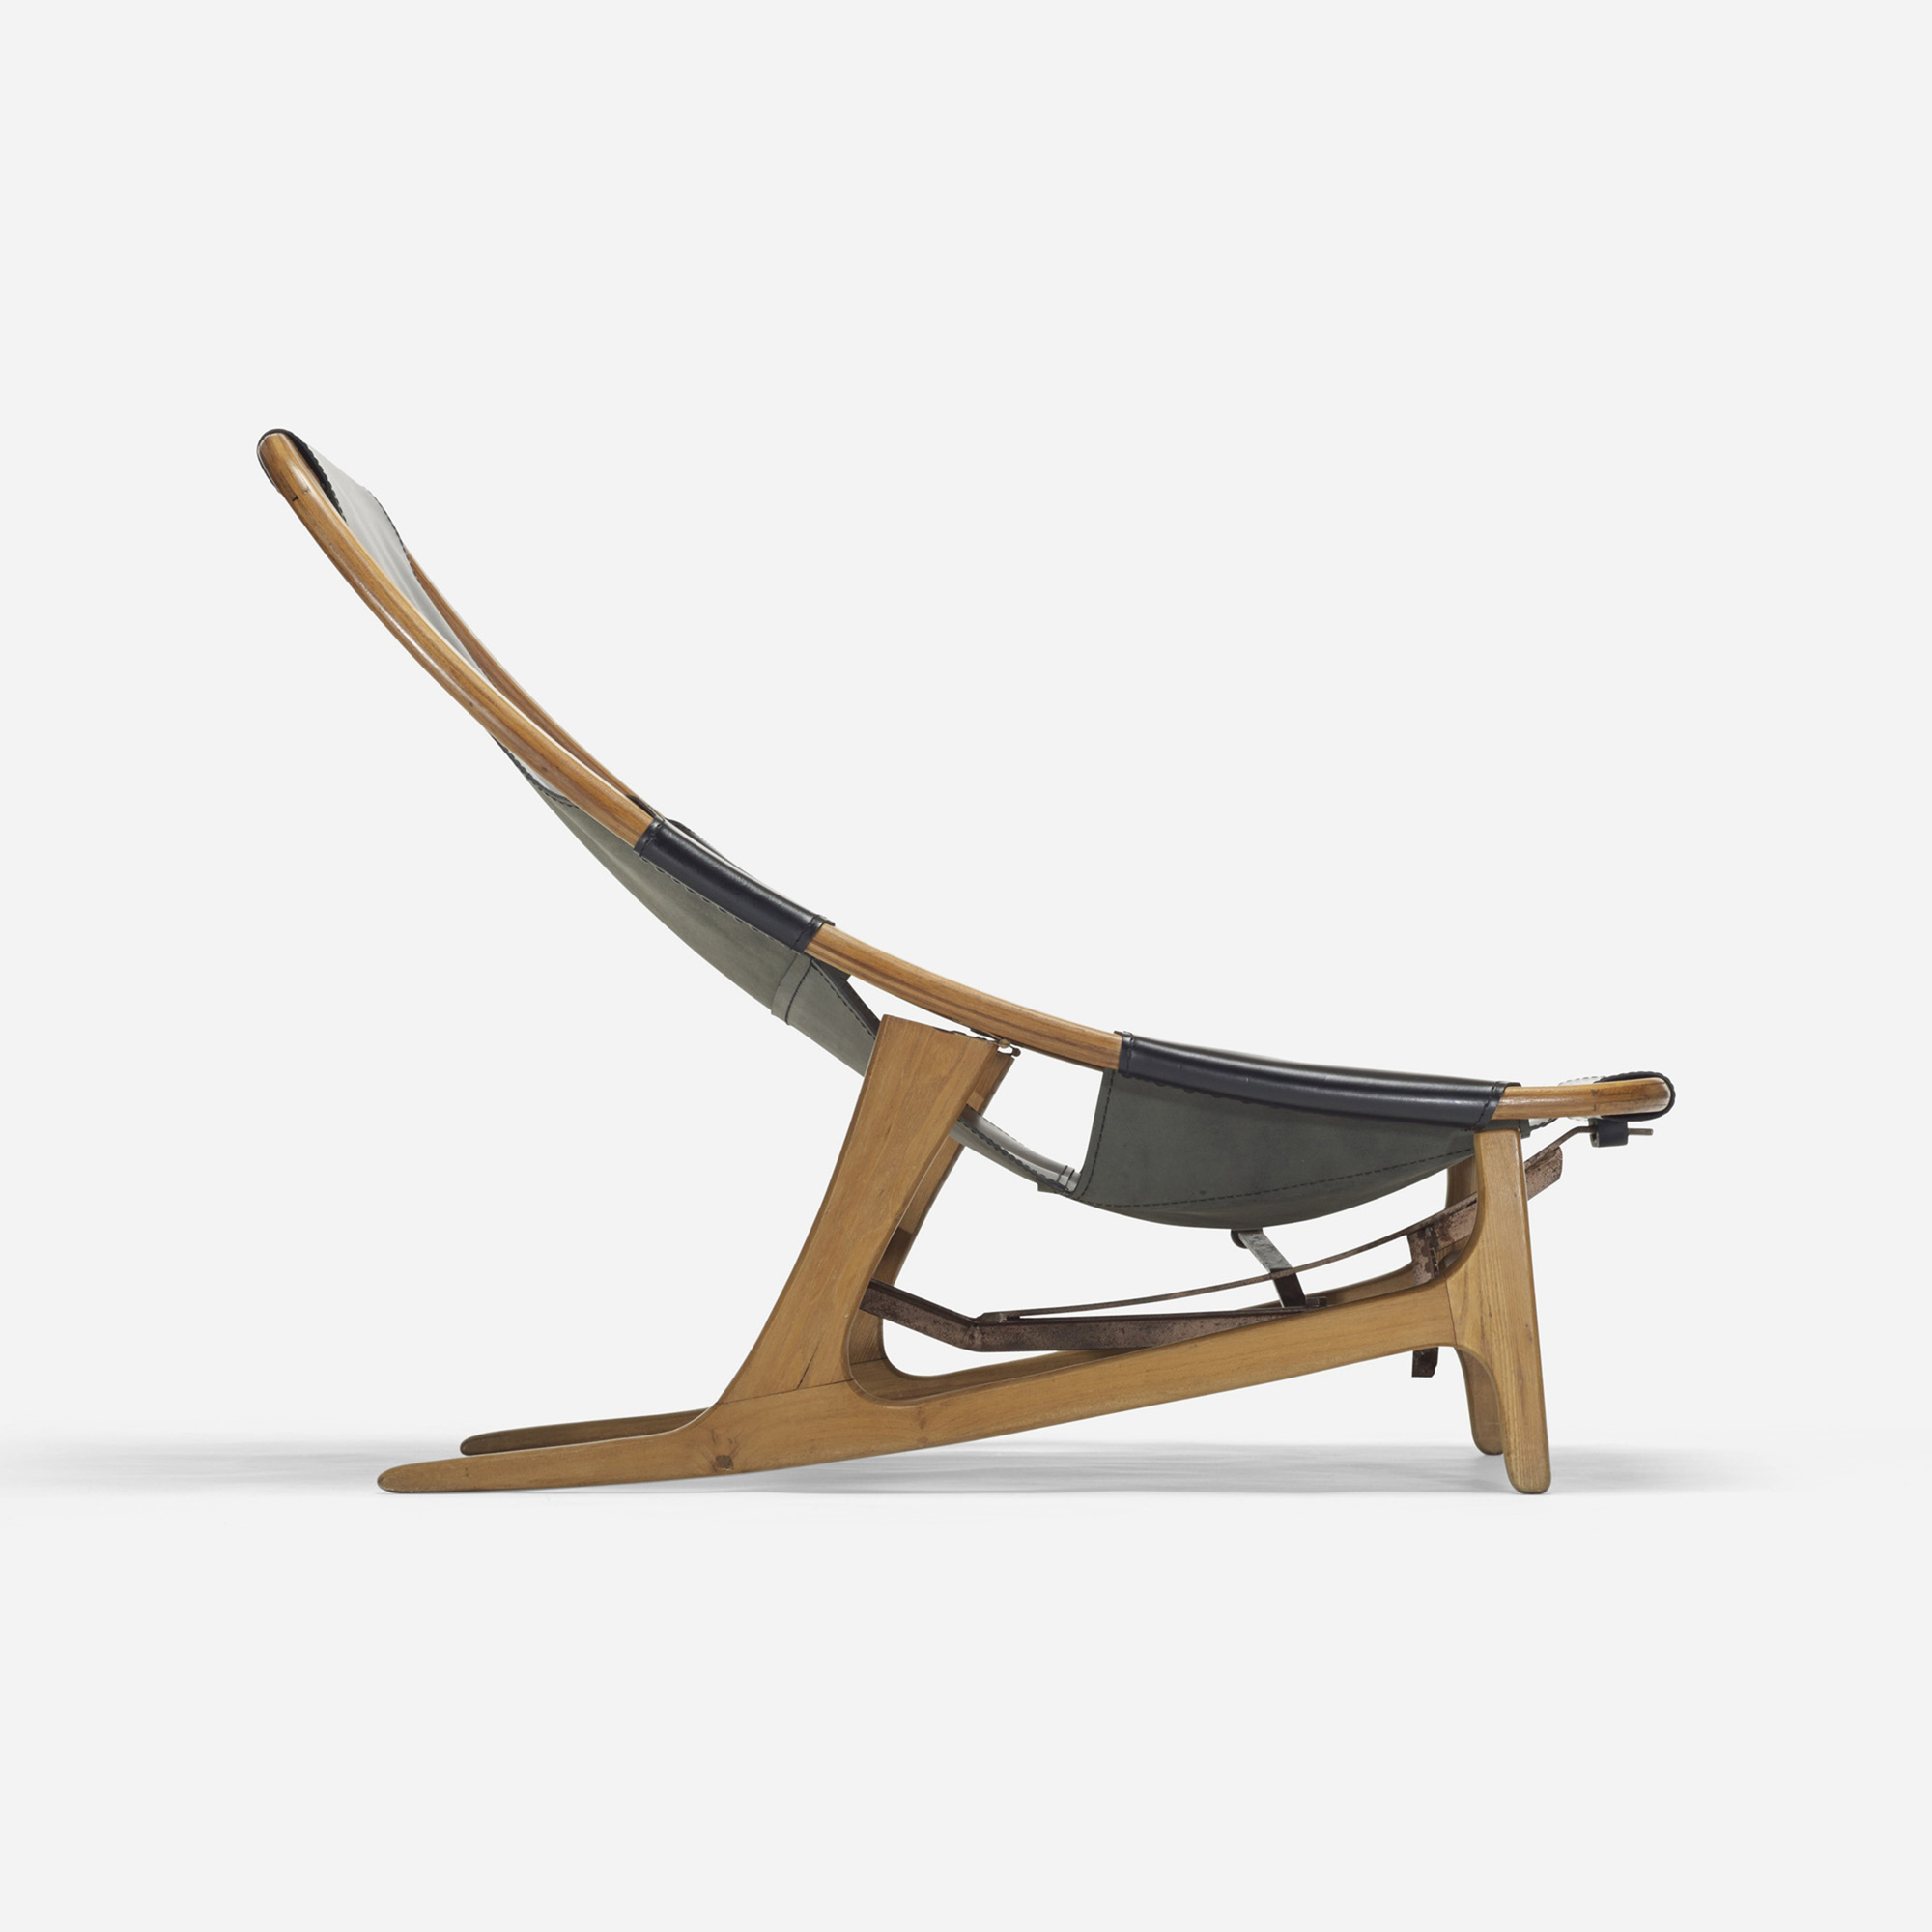 427: Arne Tidemand Ruud / Car lounge chair (2 of 3)